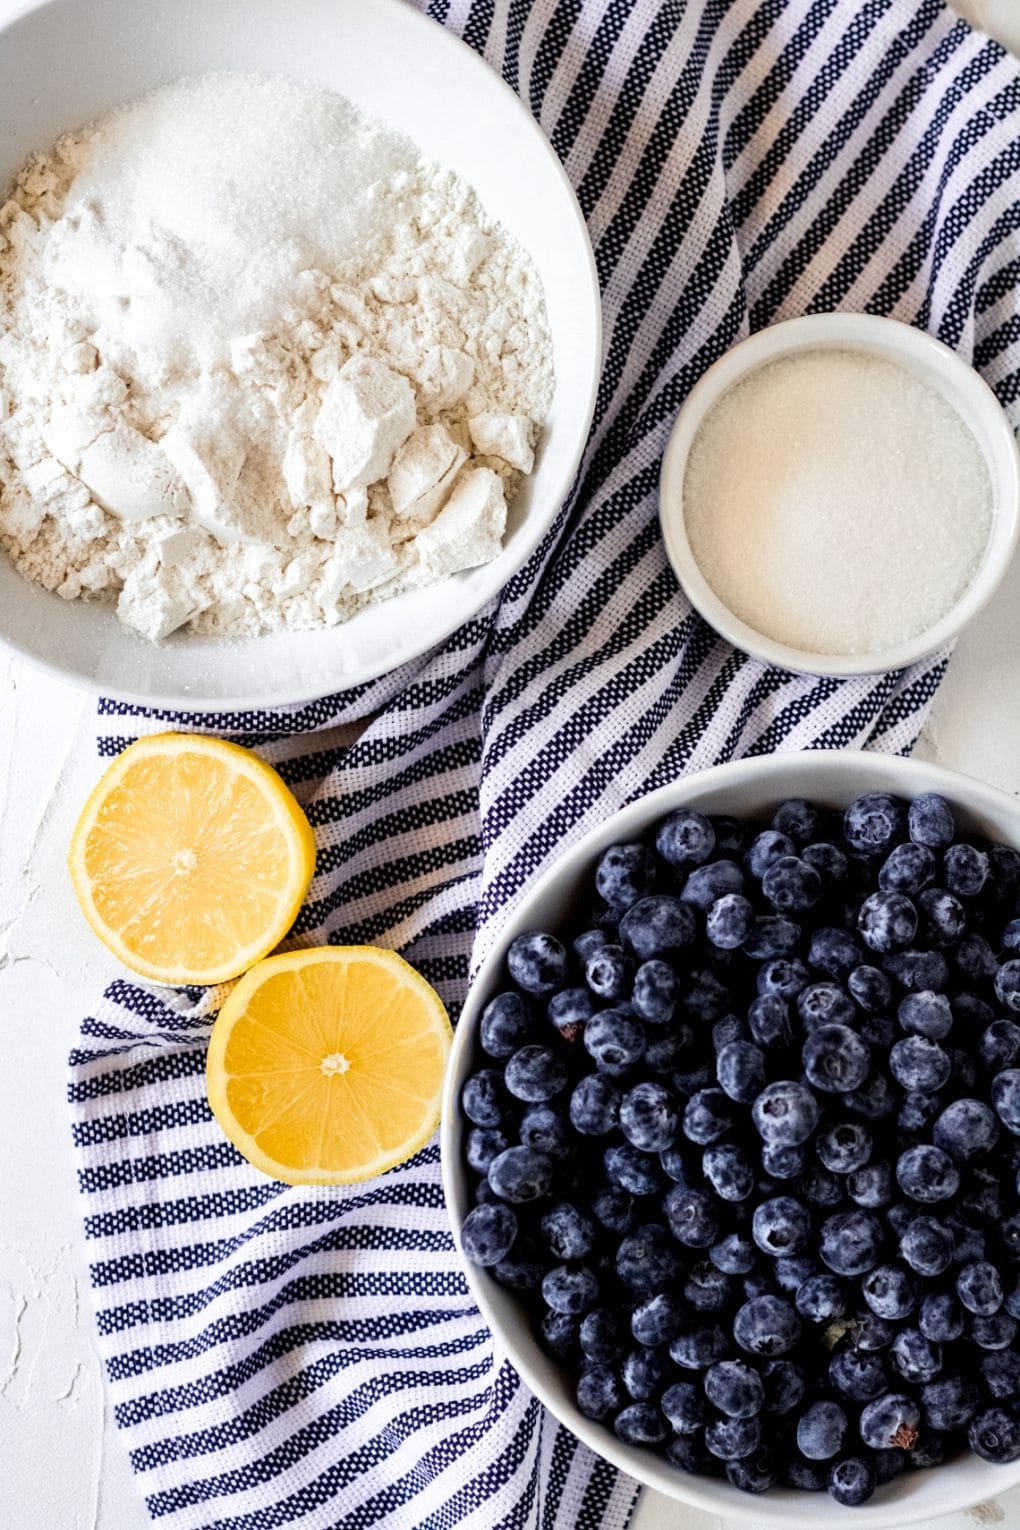 ingredients for gluten-free blueberry galette